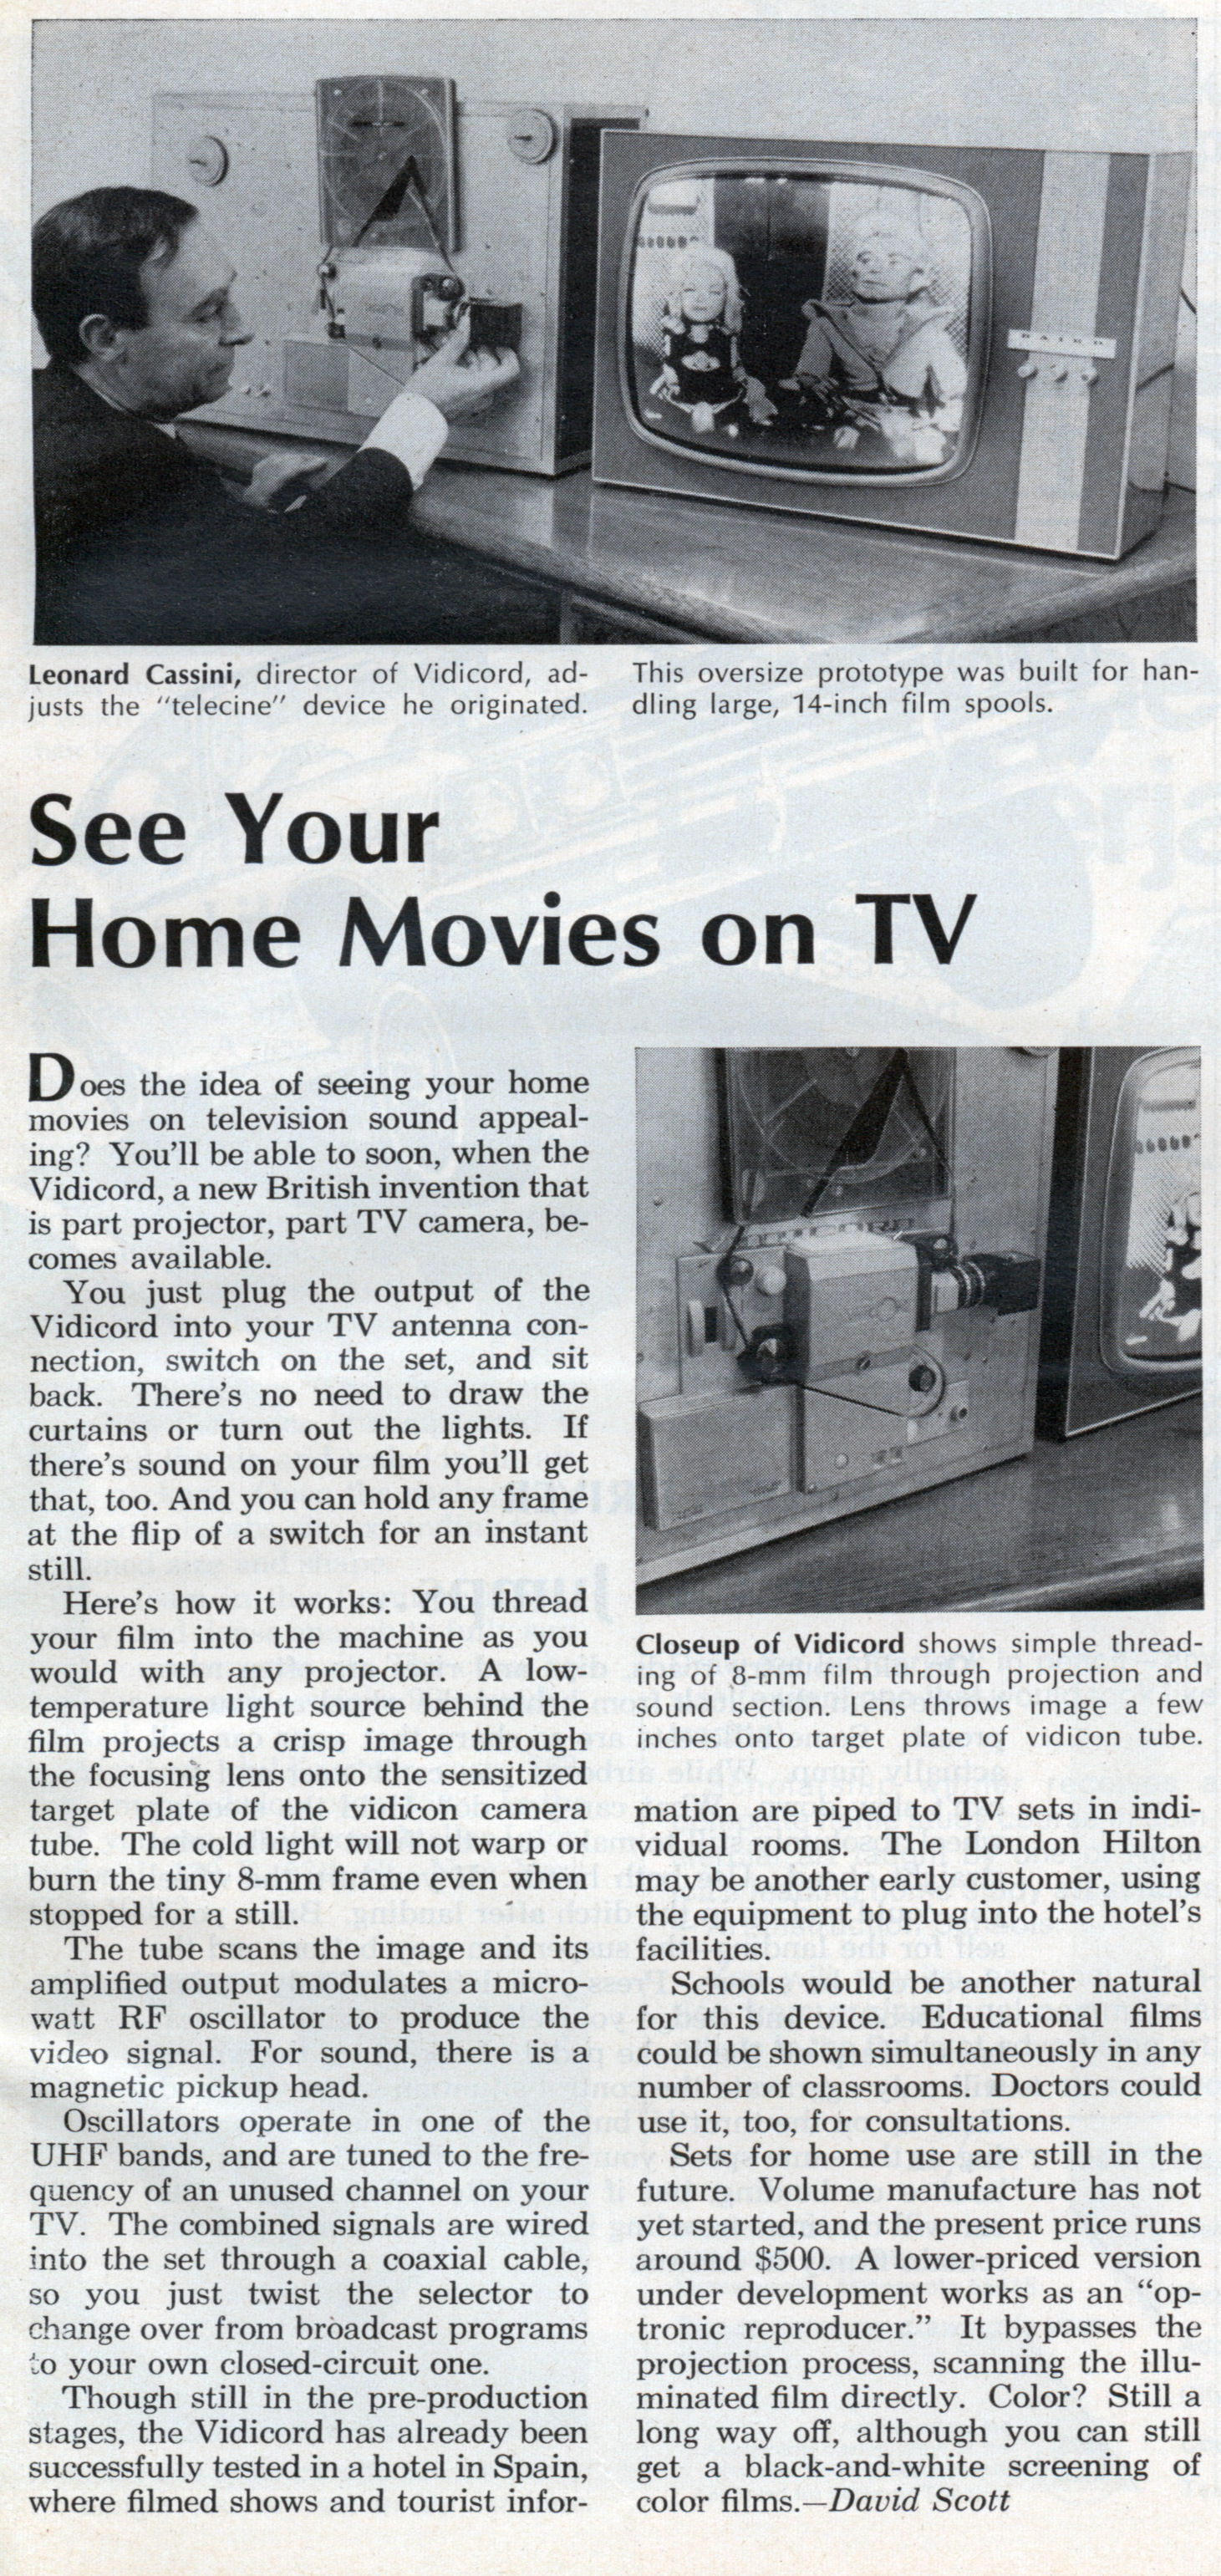 See Your Home Movies on TV